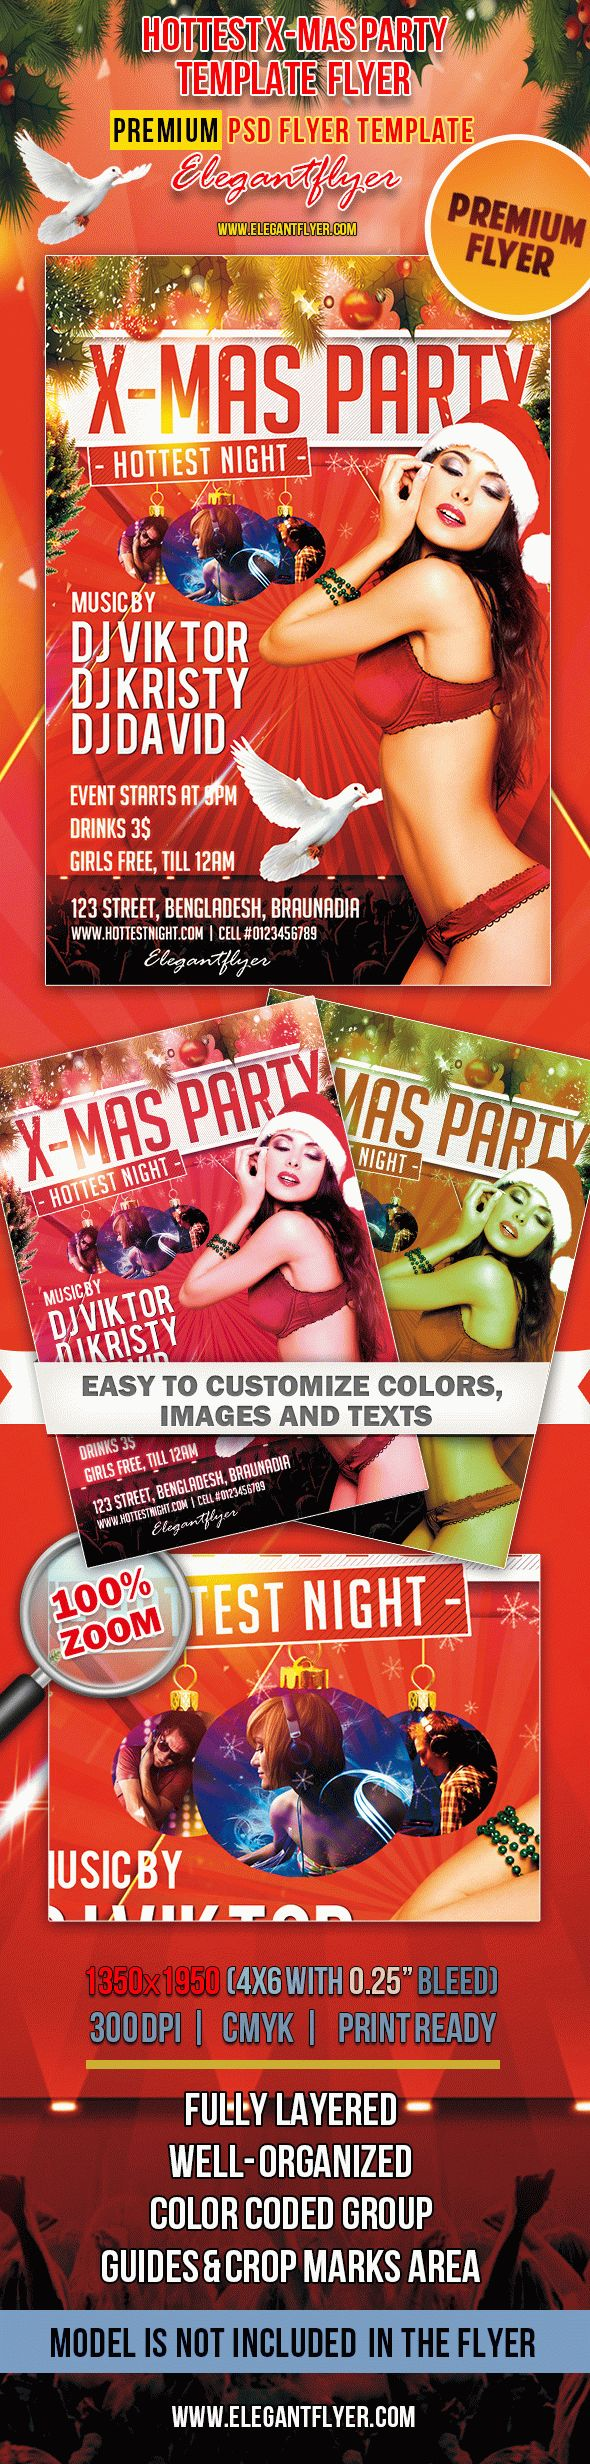 Hottest X-Mas Party – Premium Club flyer PSD Template